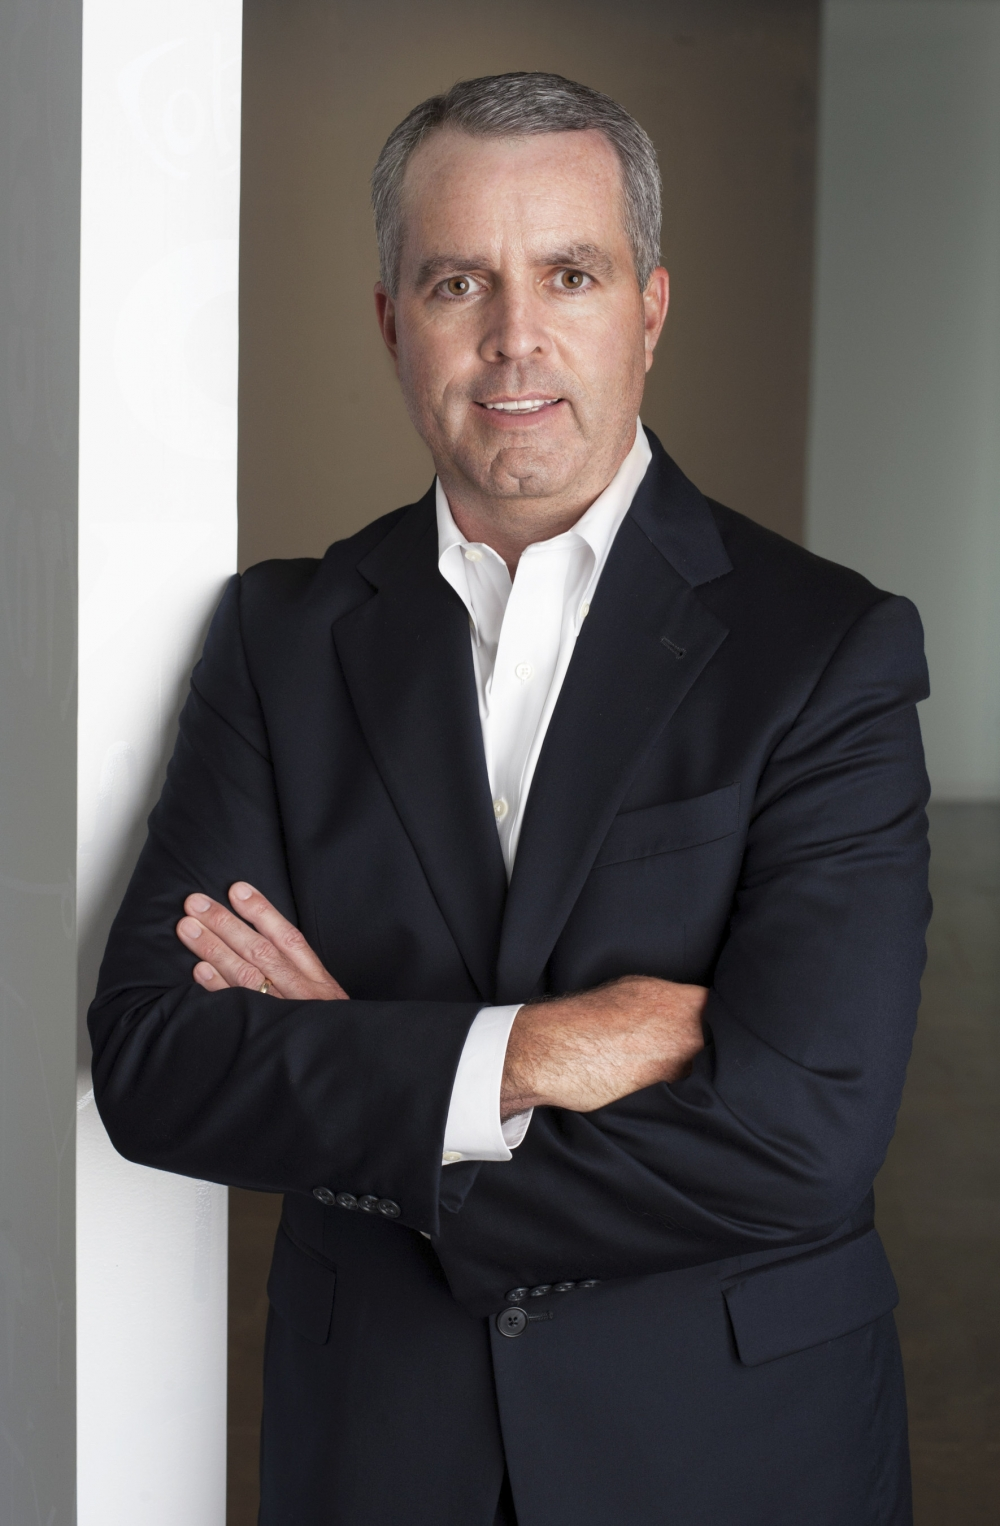 Former Coty Exec Named CEO at Illuminage Beauty